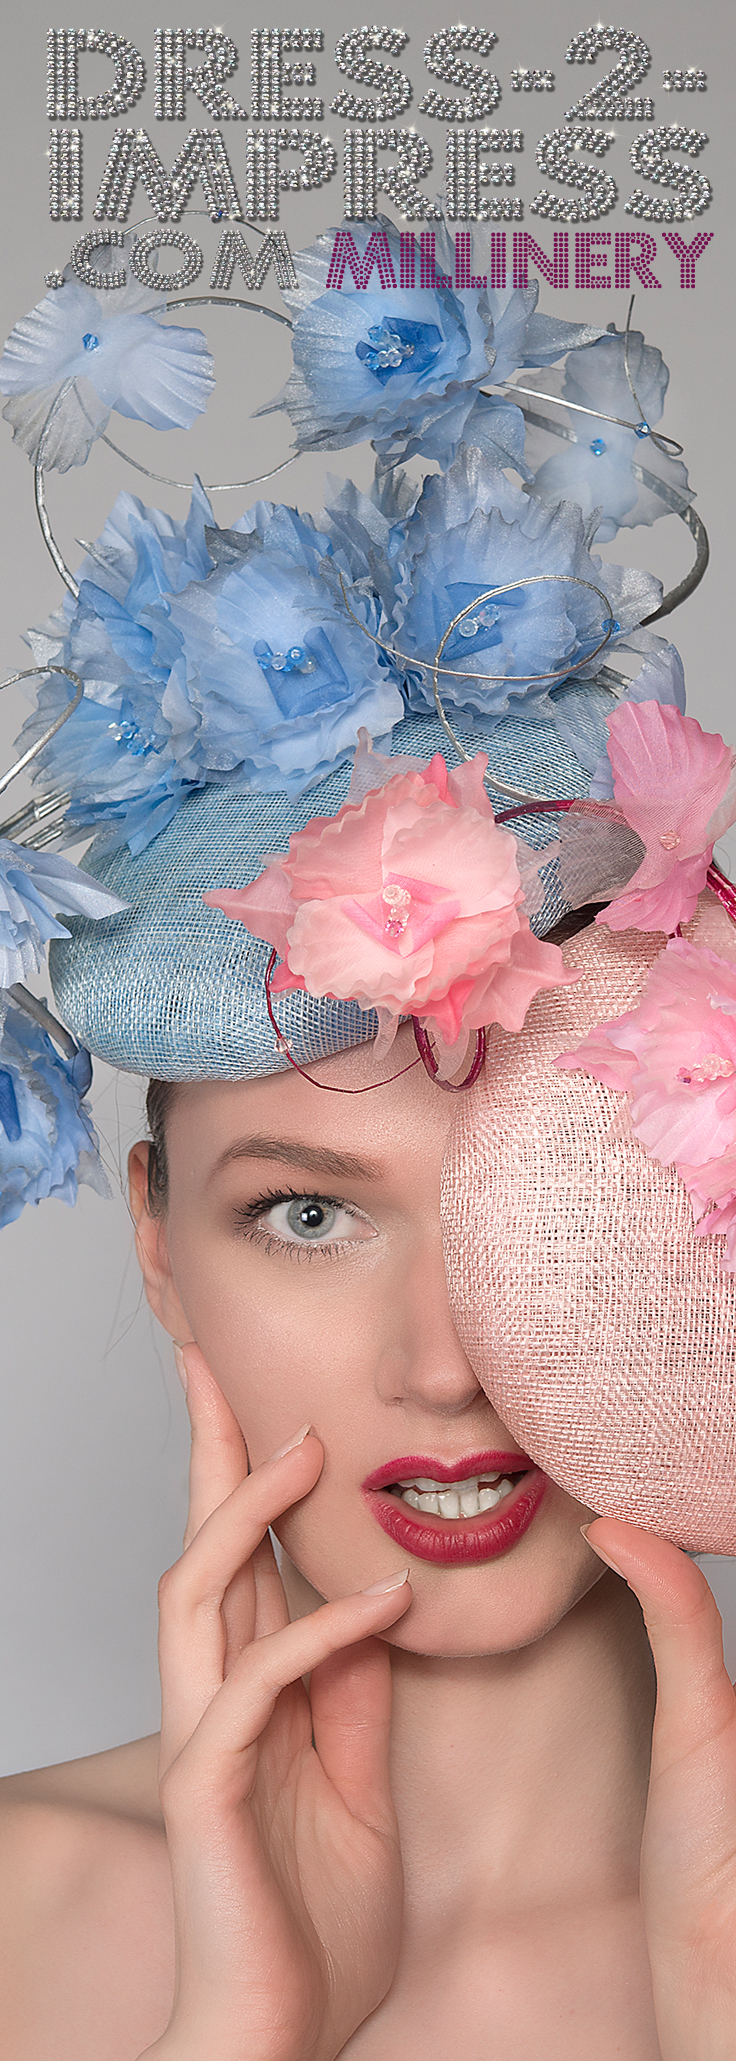 Ladies Designer Hat Hire, Book online for Royal Ascot Races. The only Hat Hire at Royal Ascot Races. Hats for other events, mother of the bride, available on Mail Order. Ascot Hats from Philip Treacy, Jane Taylor, Bundle Maclaren, Rosie Olivia, Nigel Rayment and other leading Milliners.